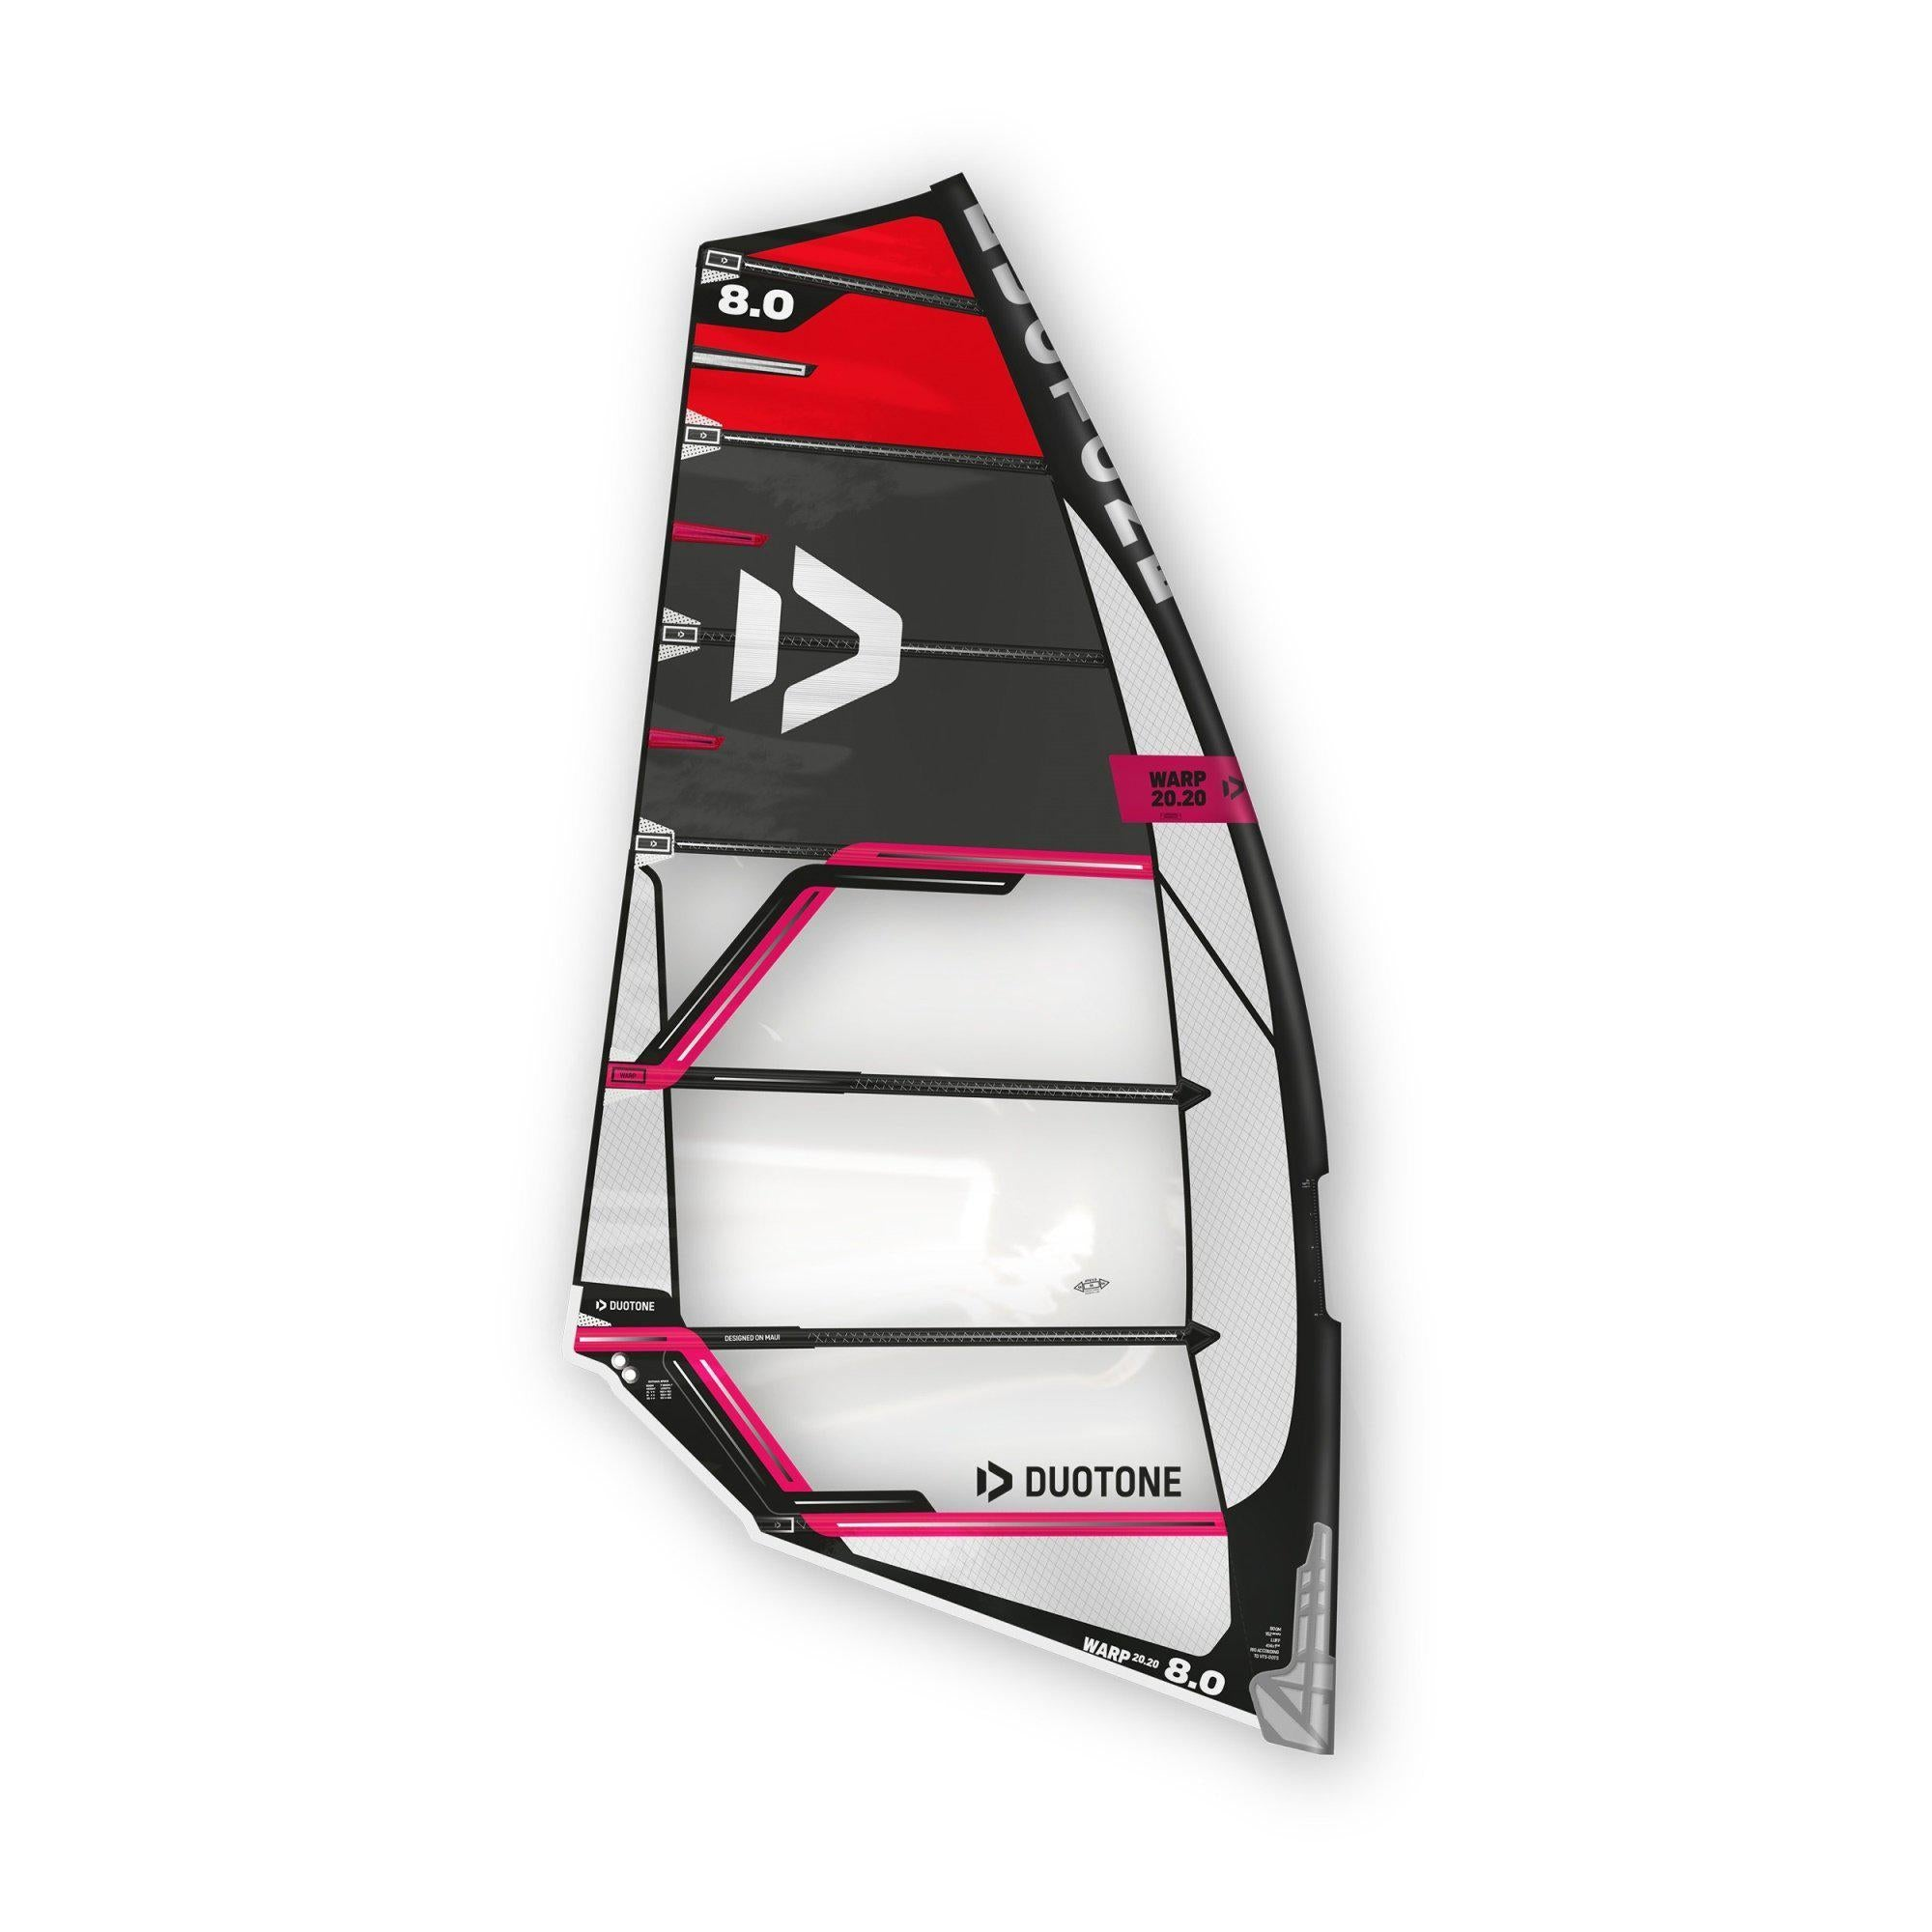 2020 Duotone Warp 20.20 Windsurfing Sail-Big Winds